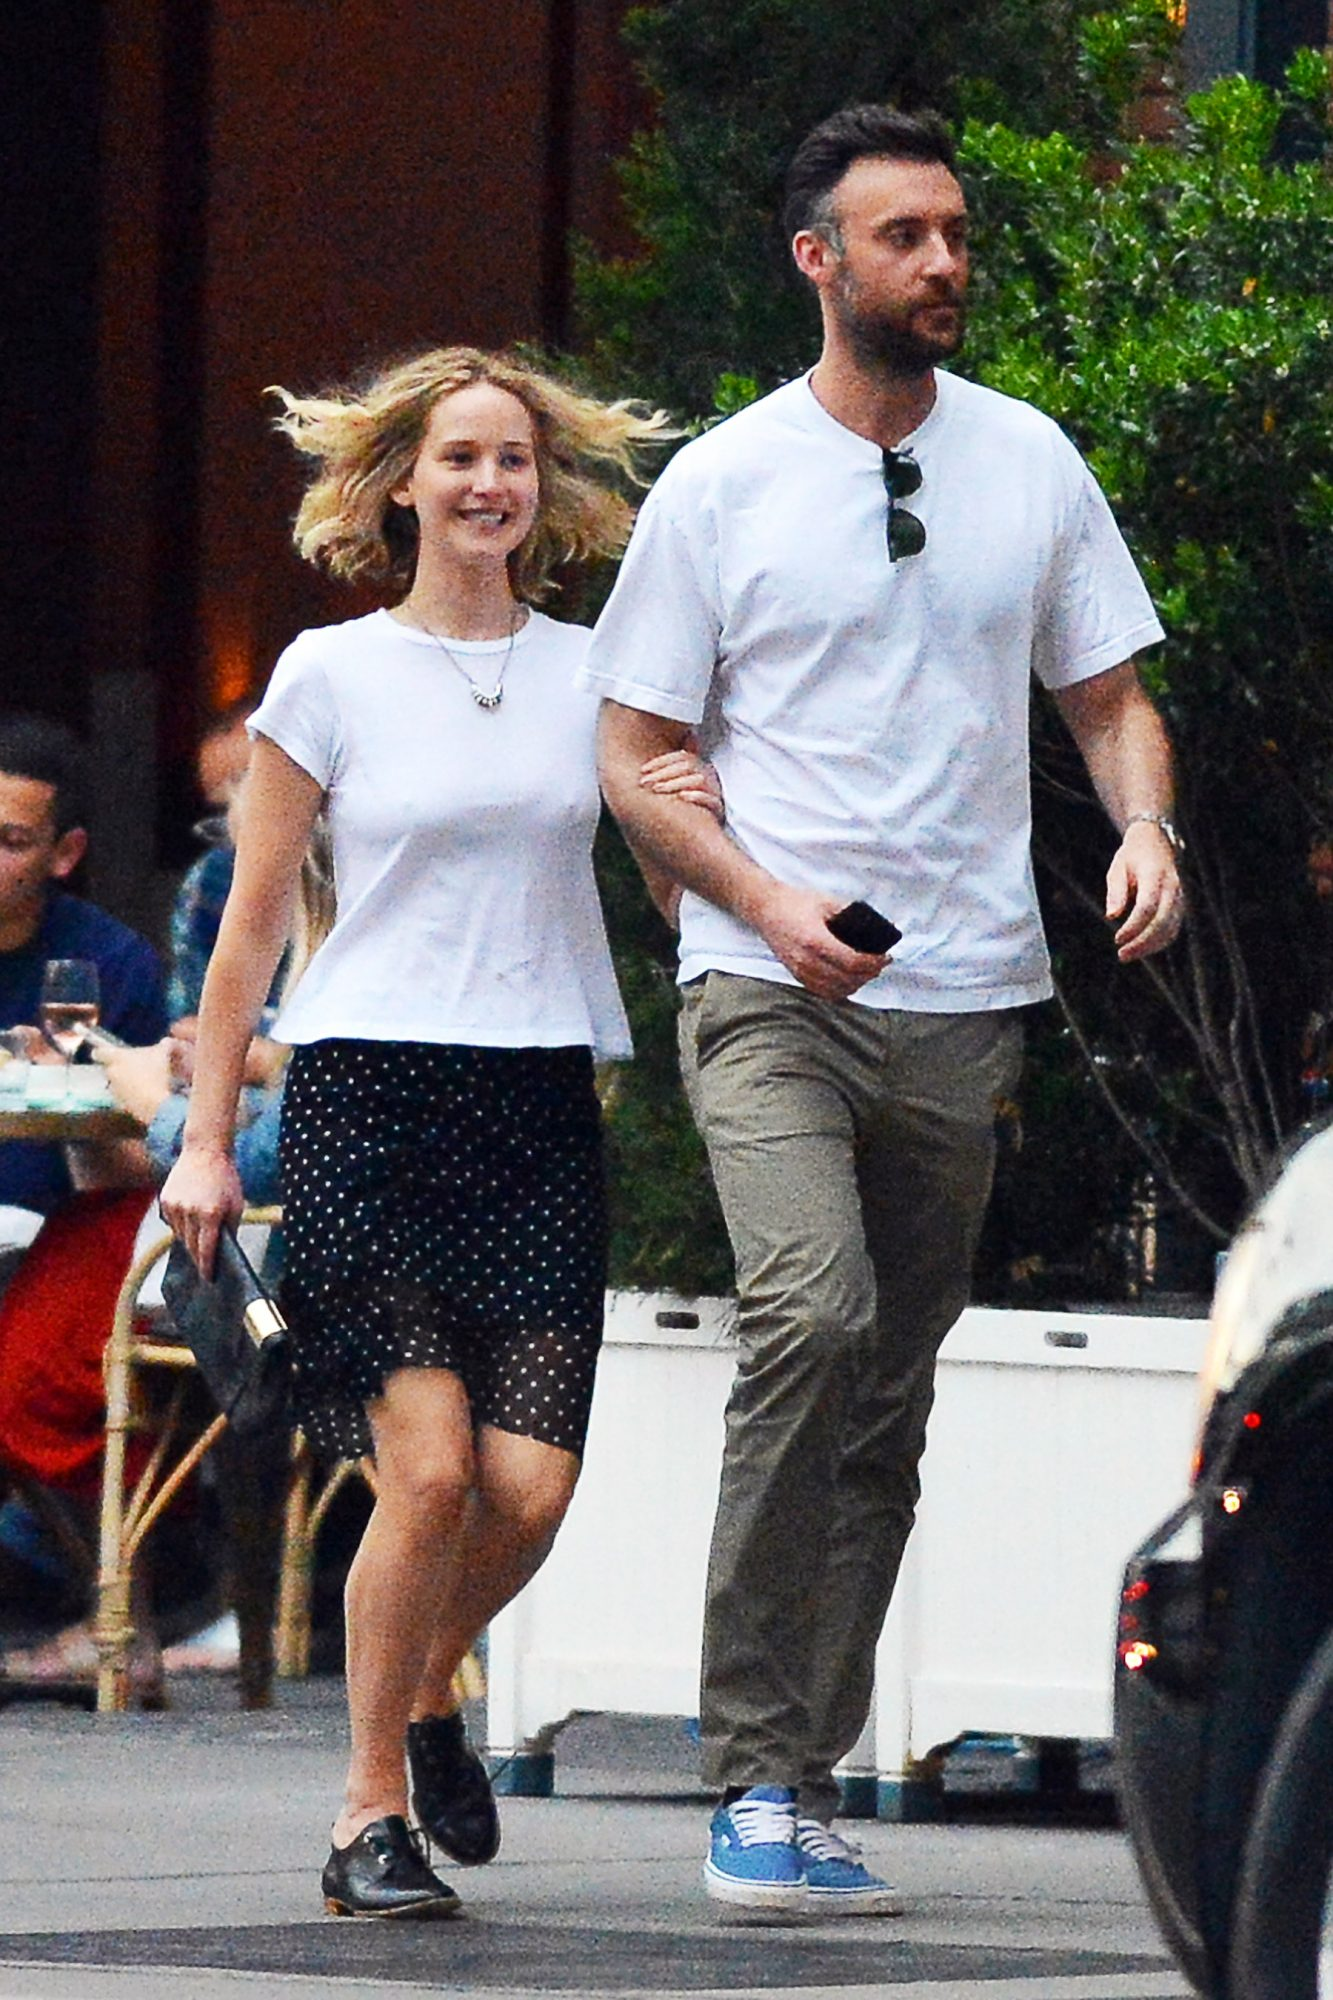 PREMIUM EXCLUSIVE: Jennifer Lawrence Walks Arm in Arm With New Boyfriend Cooke Maroney in New York City